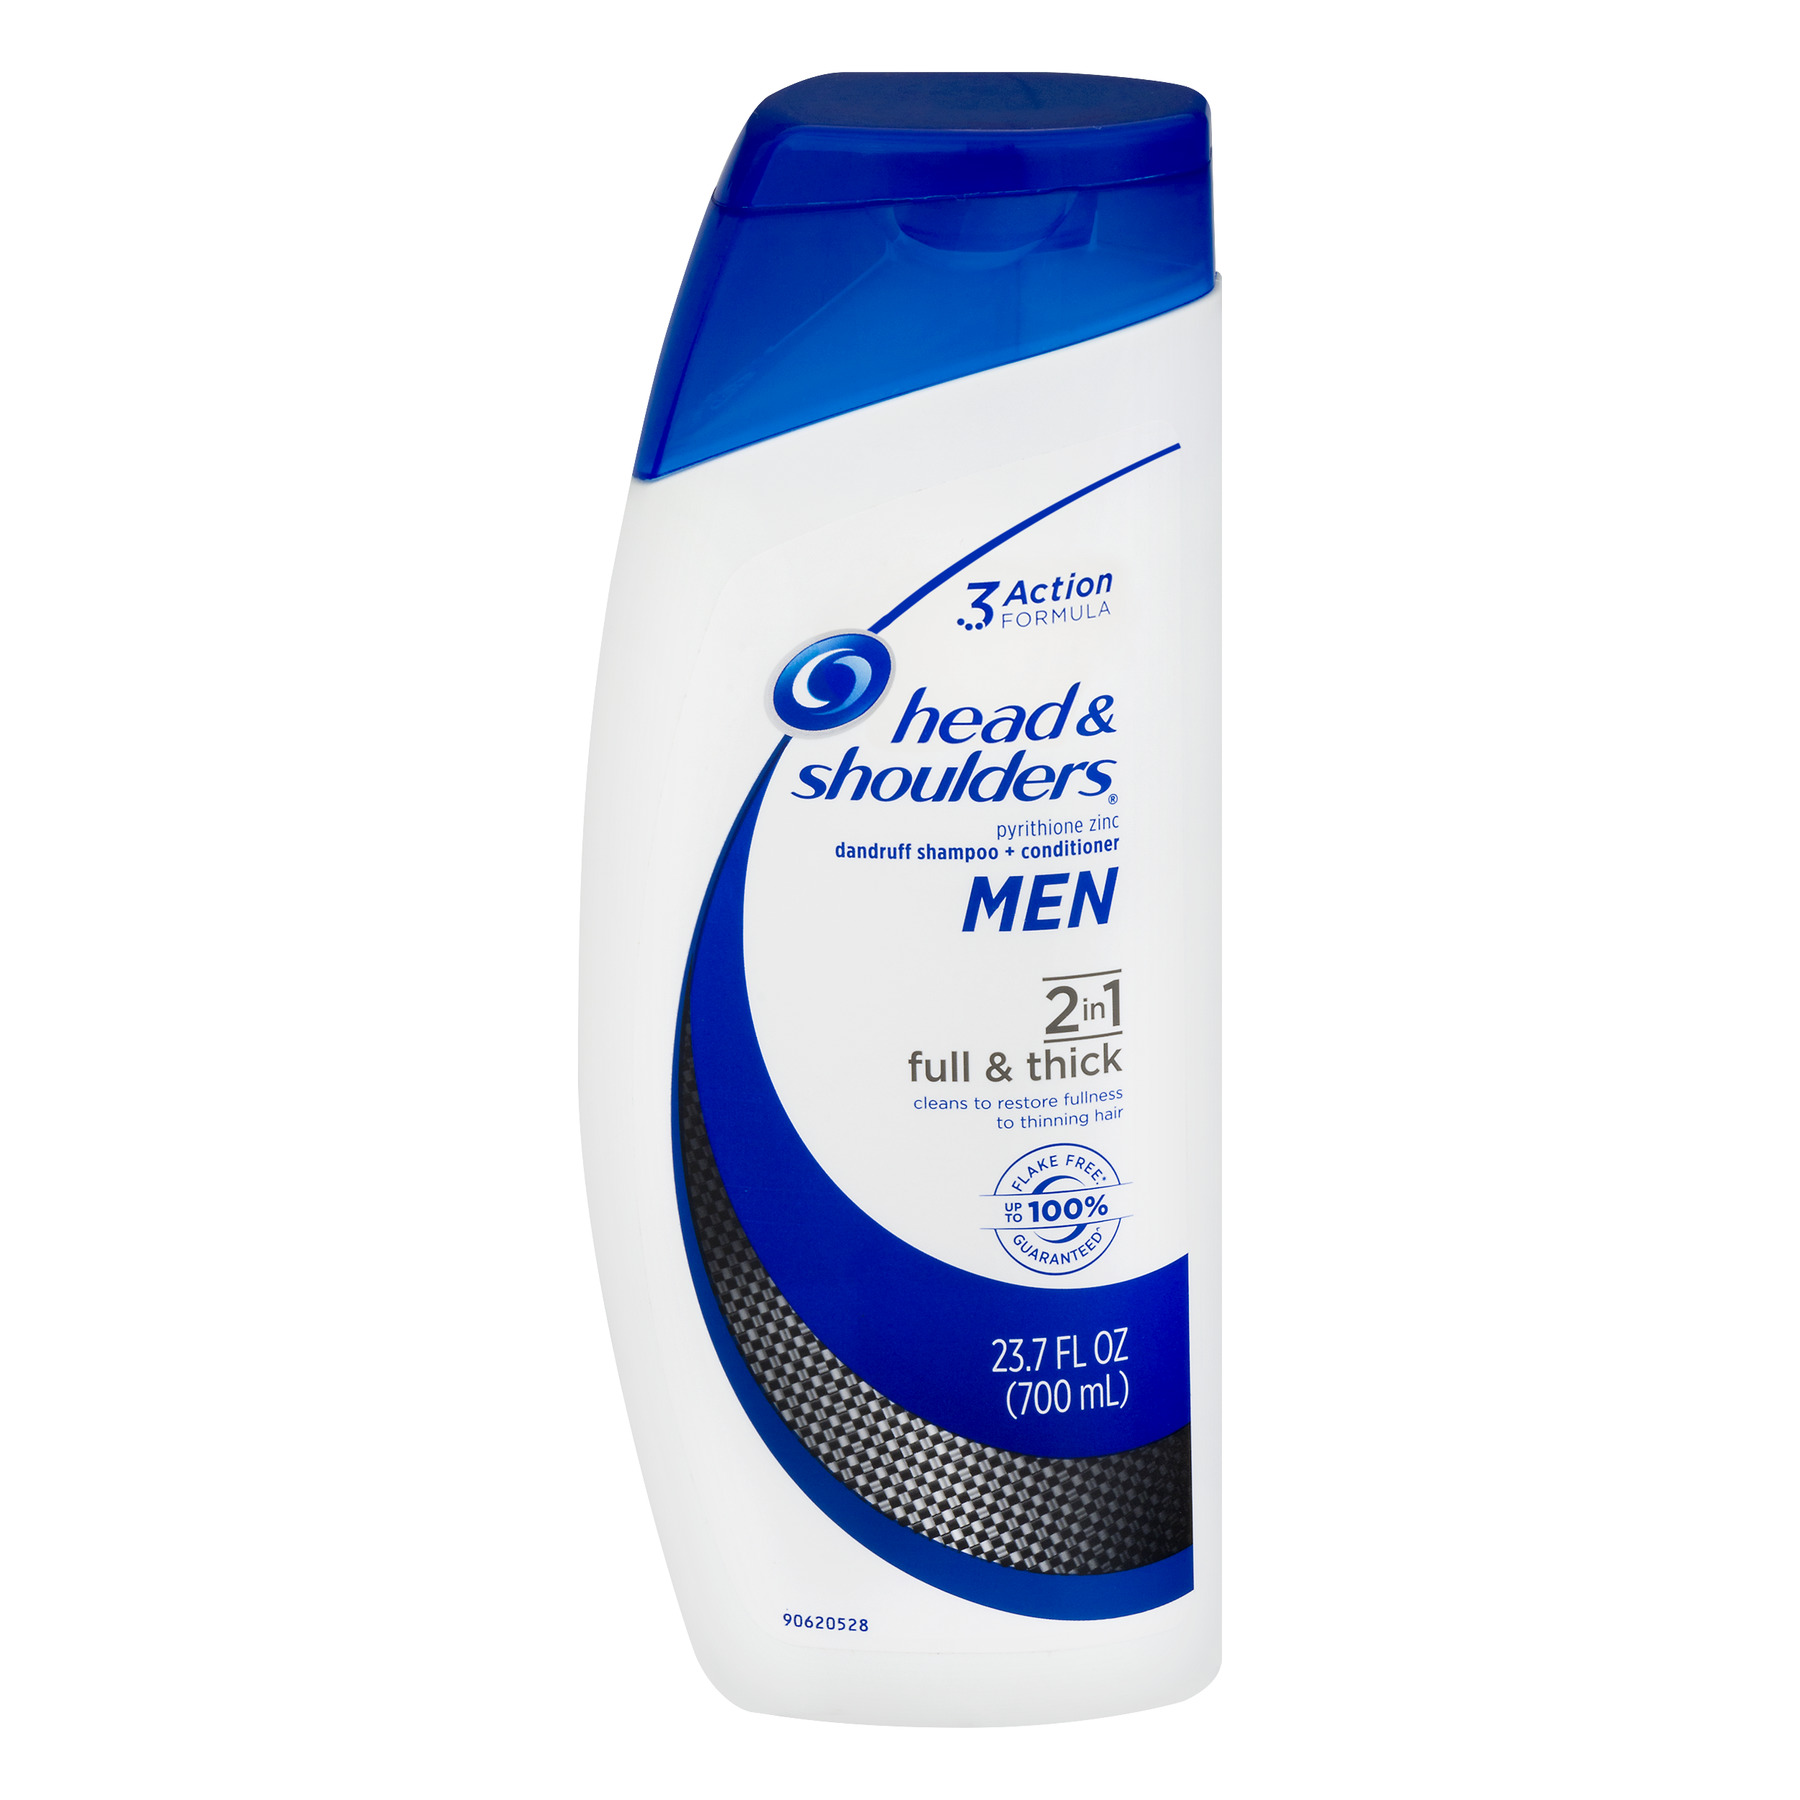 Head and Shoulders Men 2in1 Full and Thick Anti